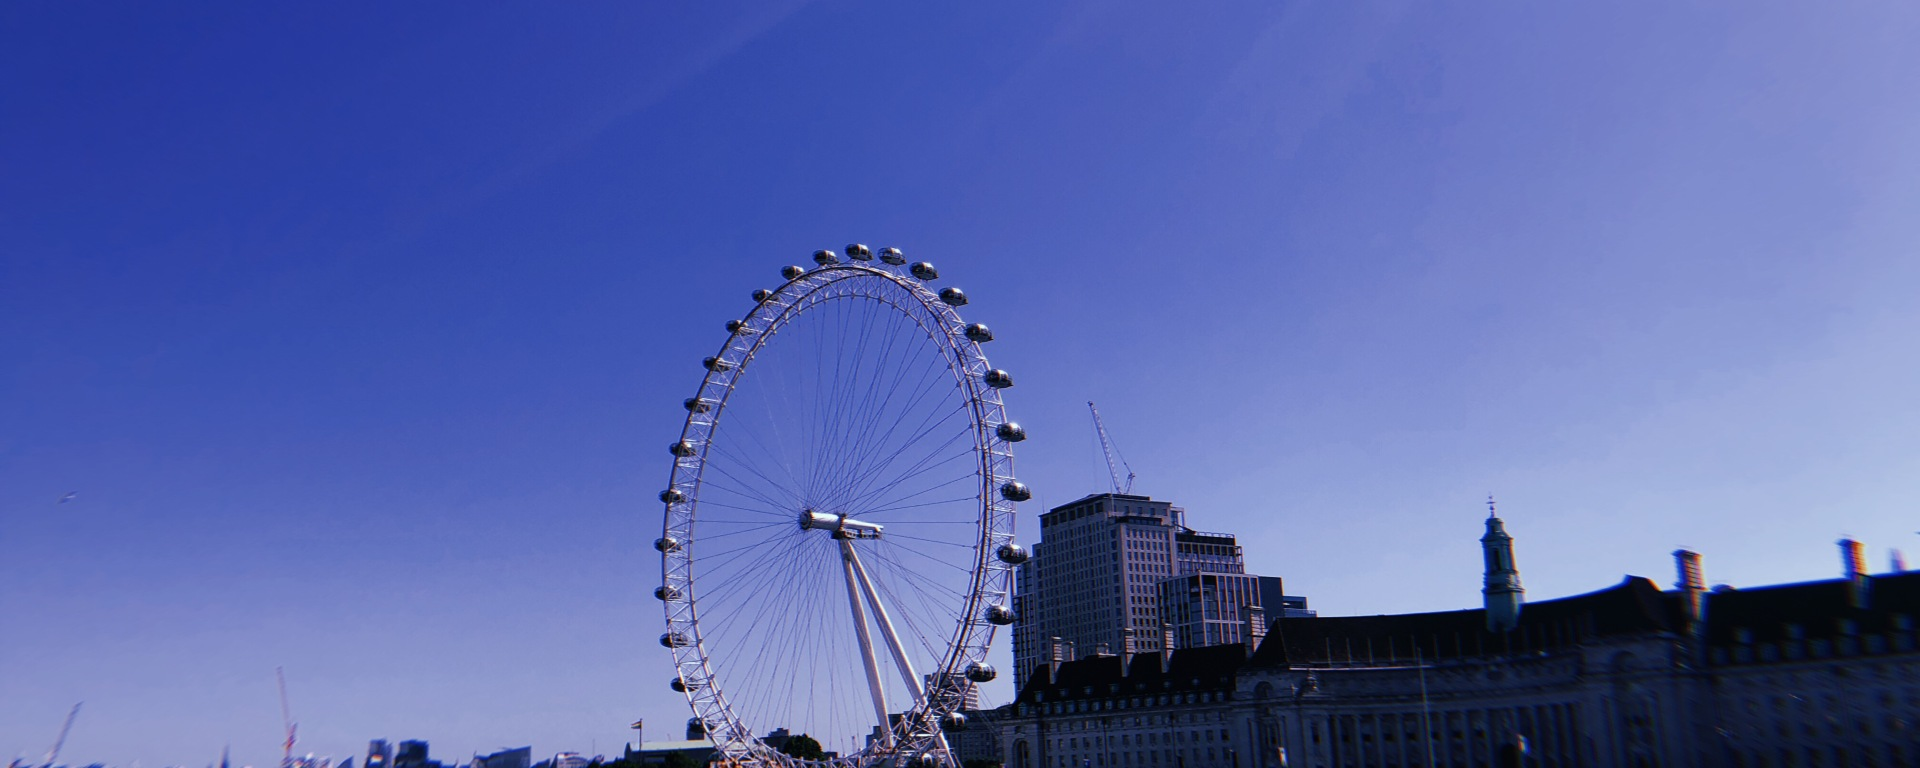 One of London's many tourist hotspots, the London Eye.